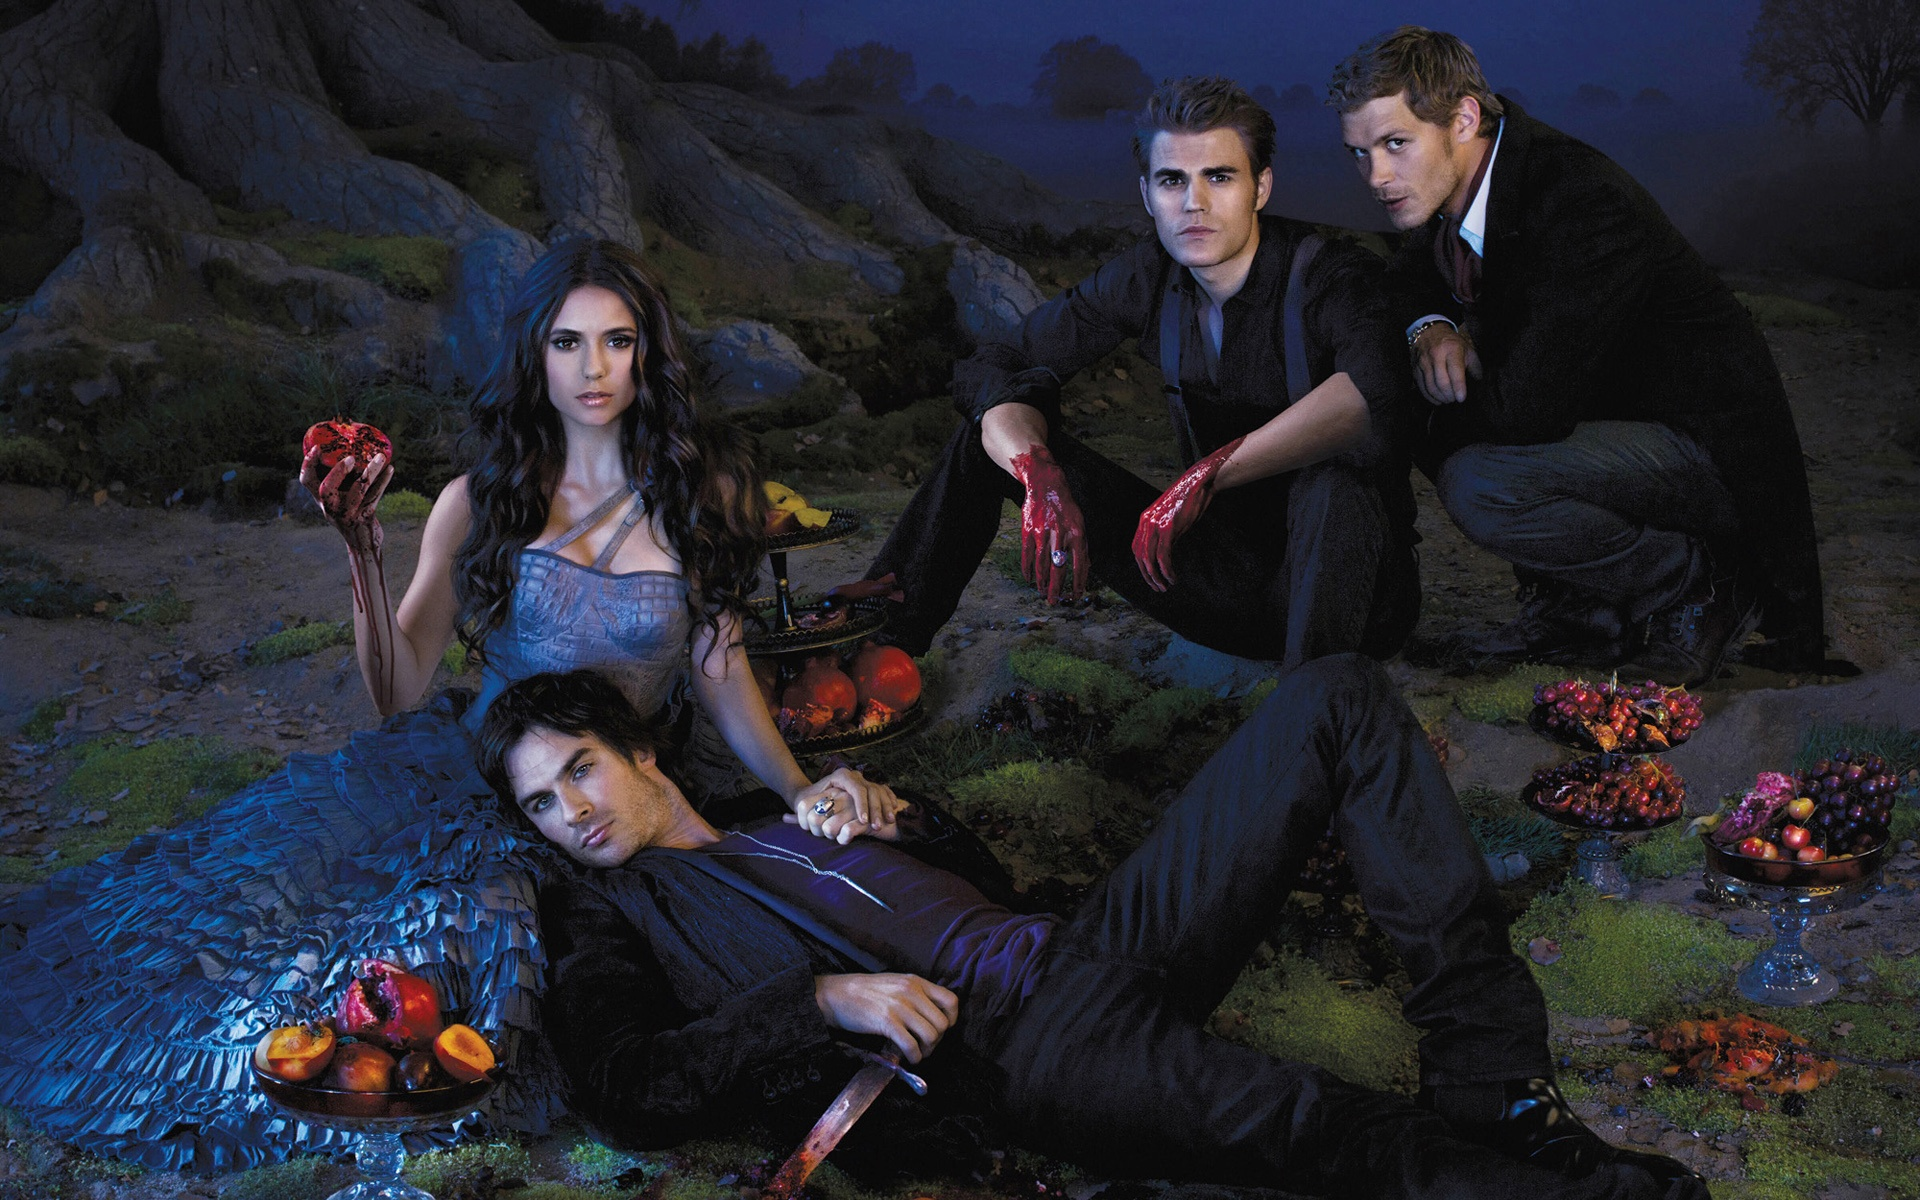 Wallpaper The Vampire Diaries 2013 Tv Series 1920x1200 Hd Picture